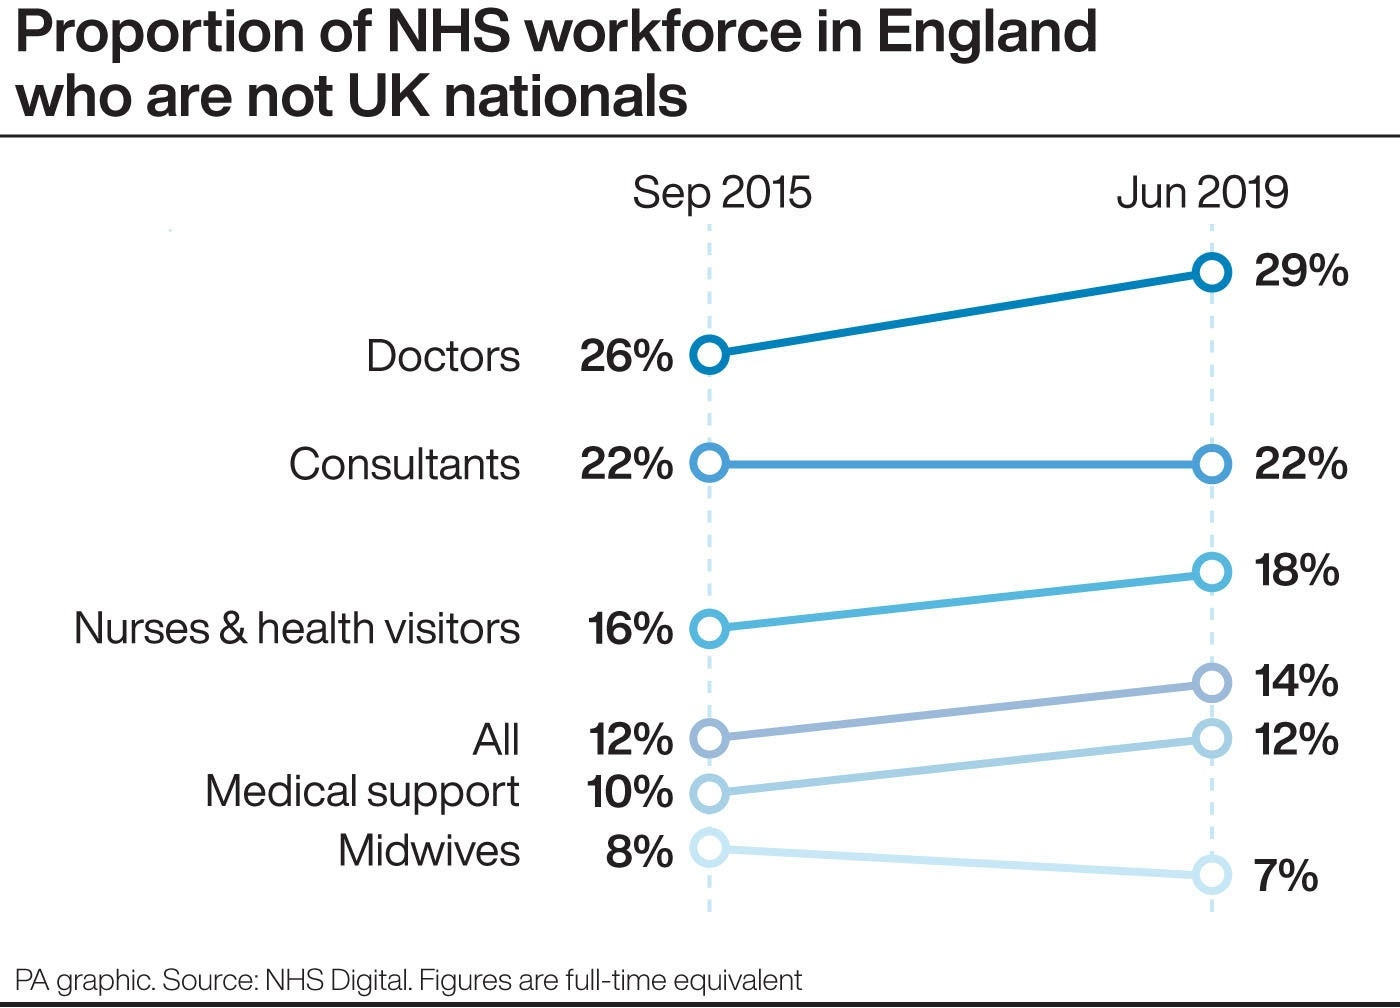 Proportion of NHS workforce in England who are not UK nationals